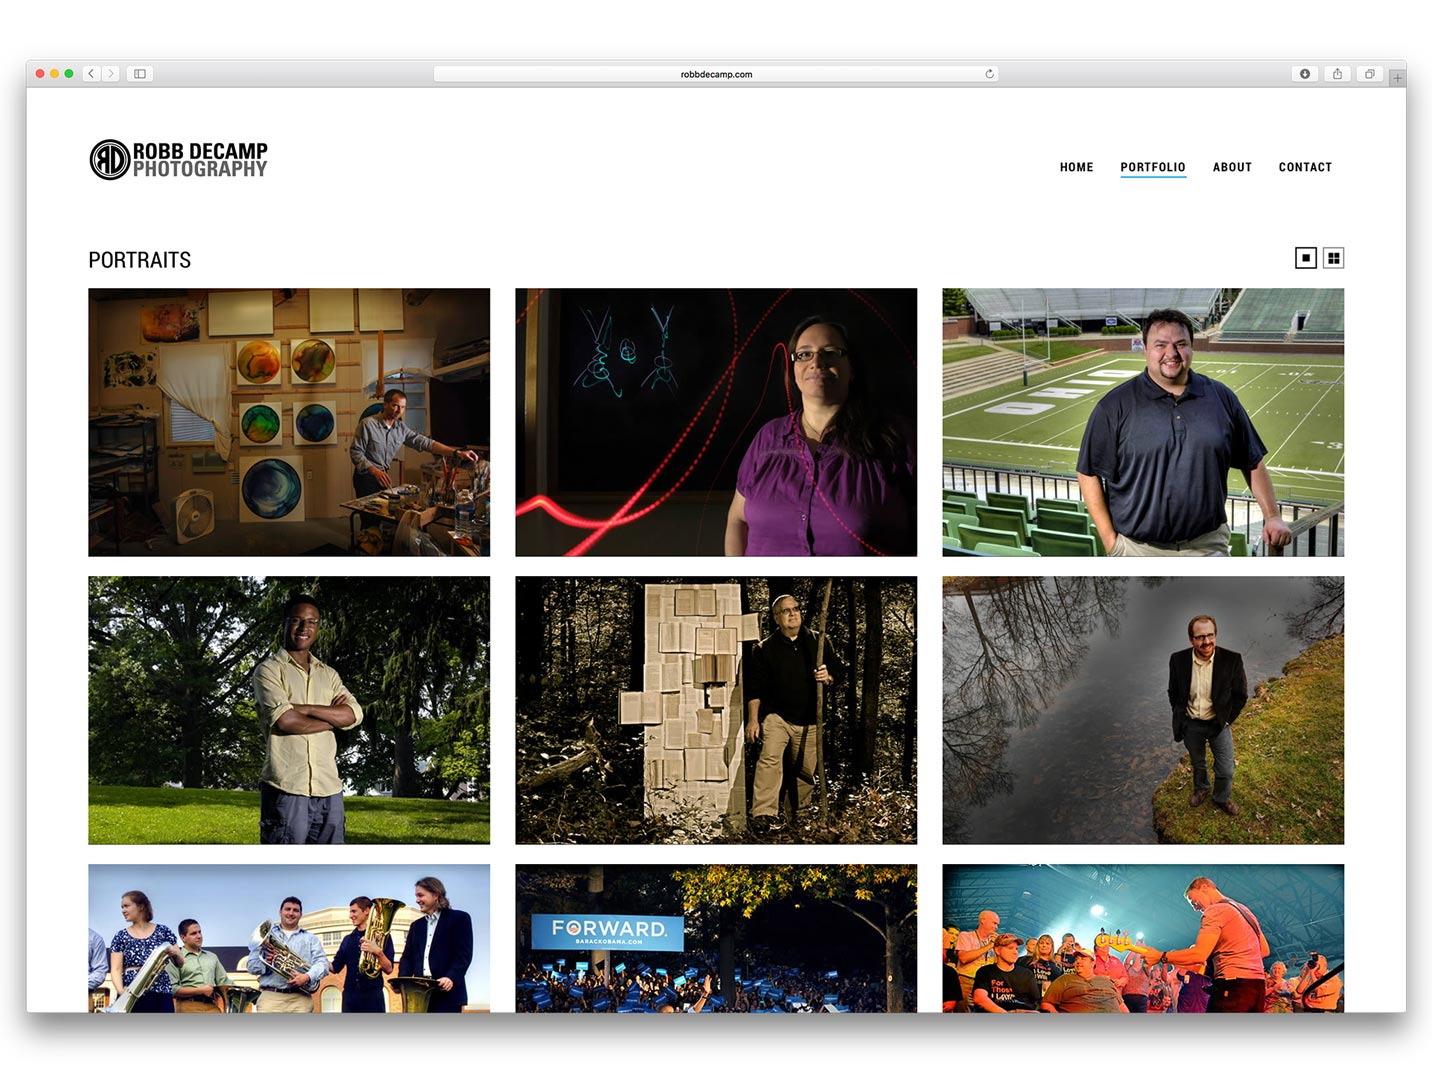 Robb DeCamp Photography Website